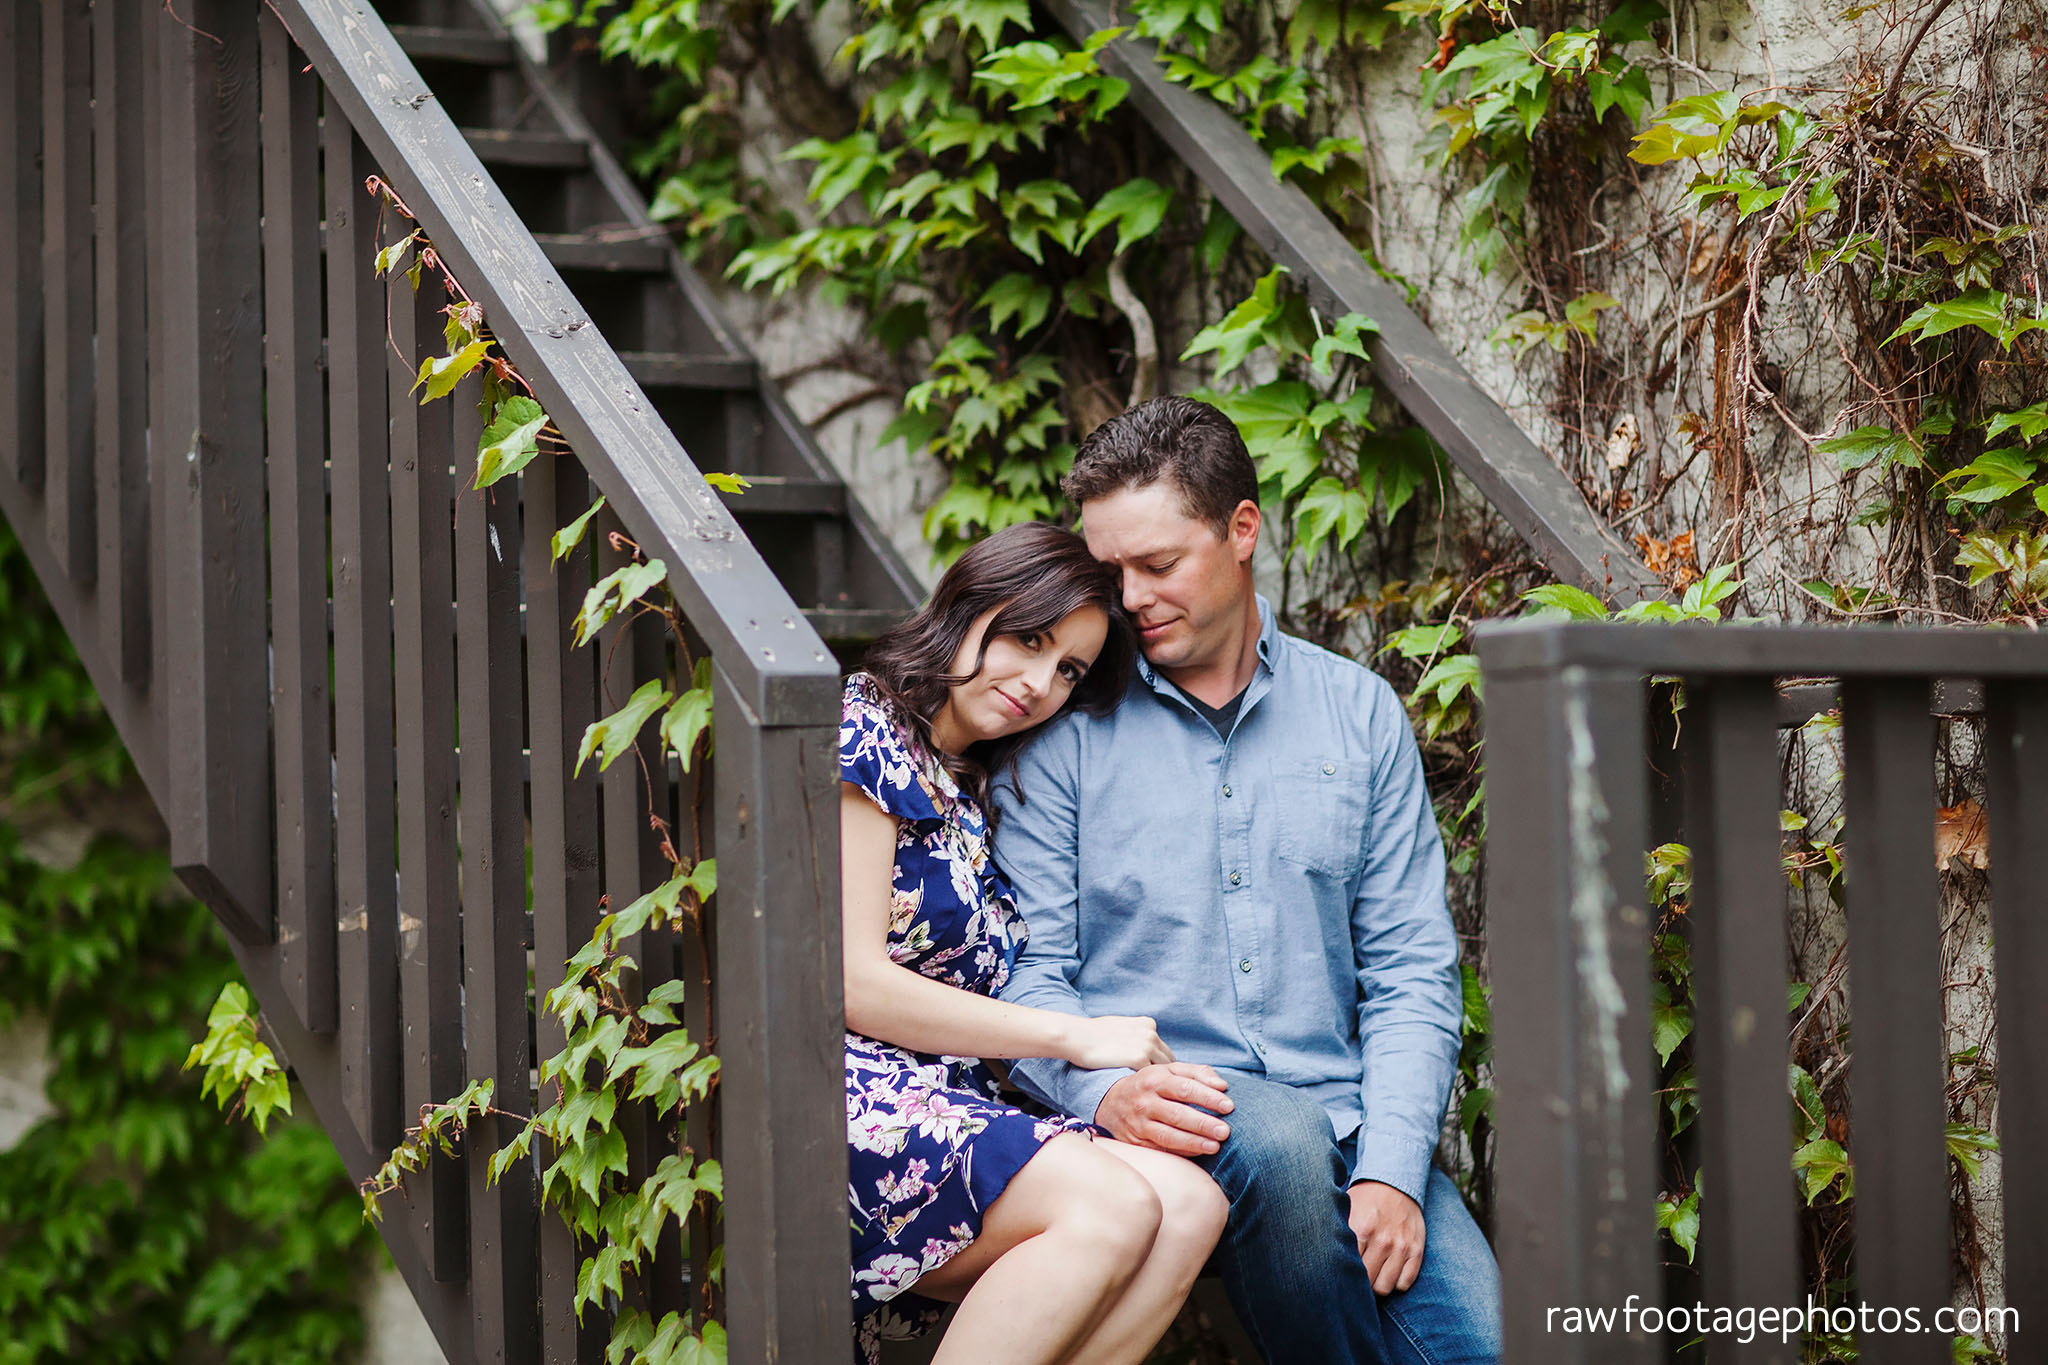 london_ontario_wedding_photographer-raw_footage_photography-engagement_session-campus_session-kings_college-uwo-spring_blooms012.jpg